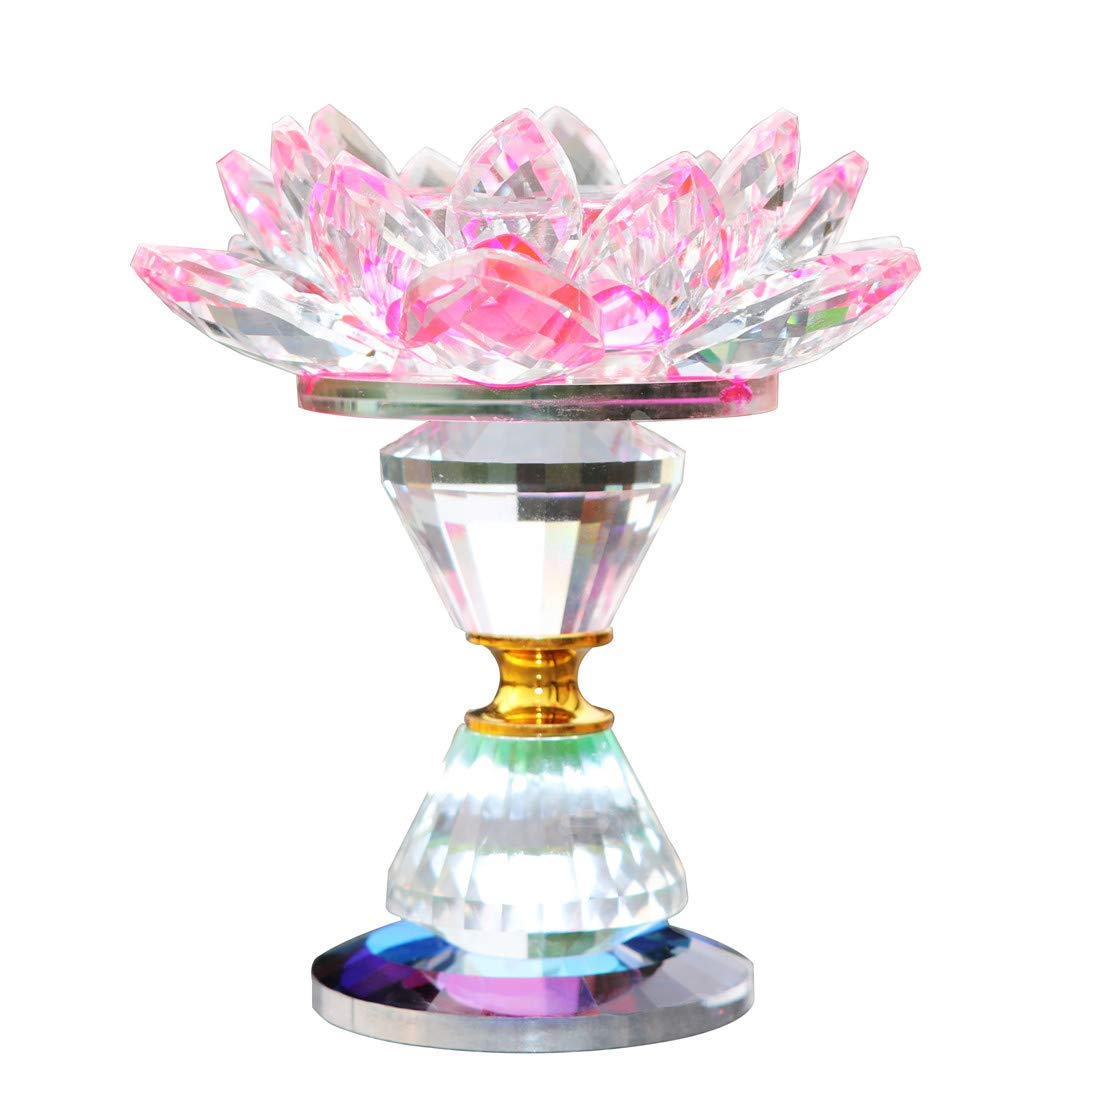 Waltz&F Crystal Lotus Flower Tealight Candle Holder 4.5 inch,Pink